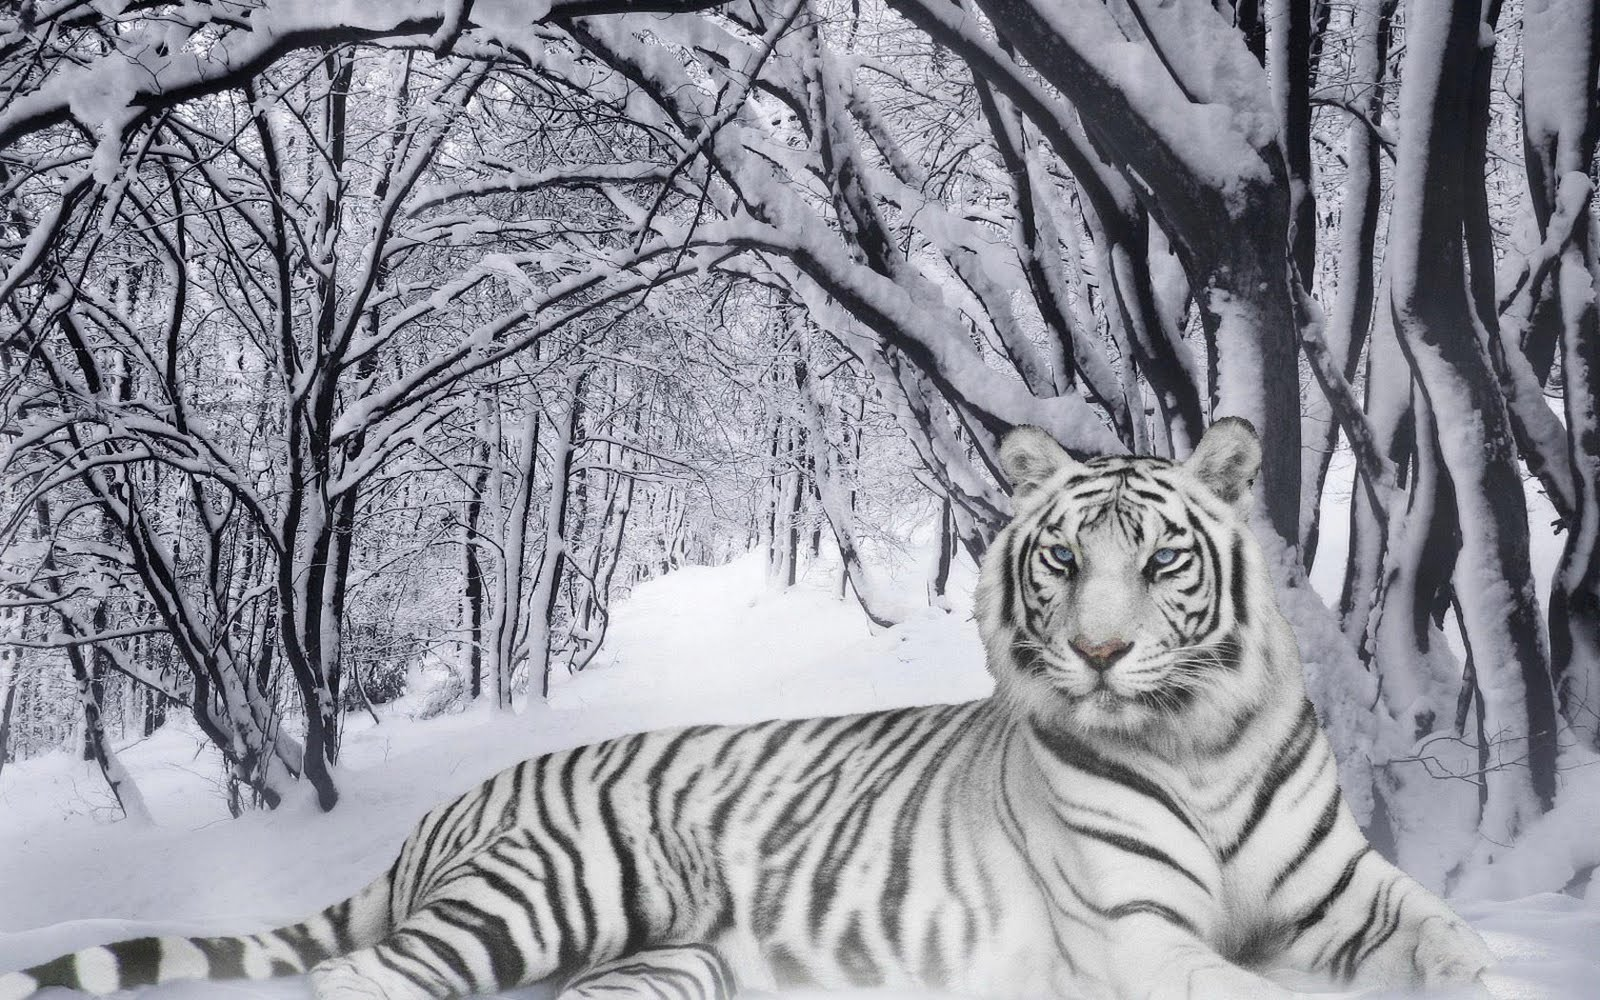 Snow White tiger images